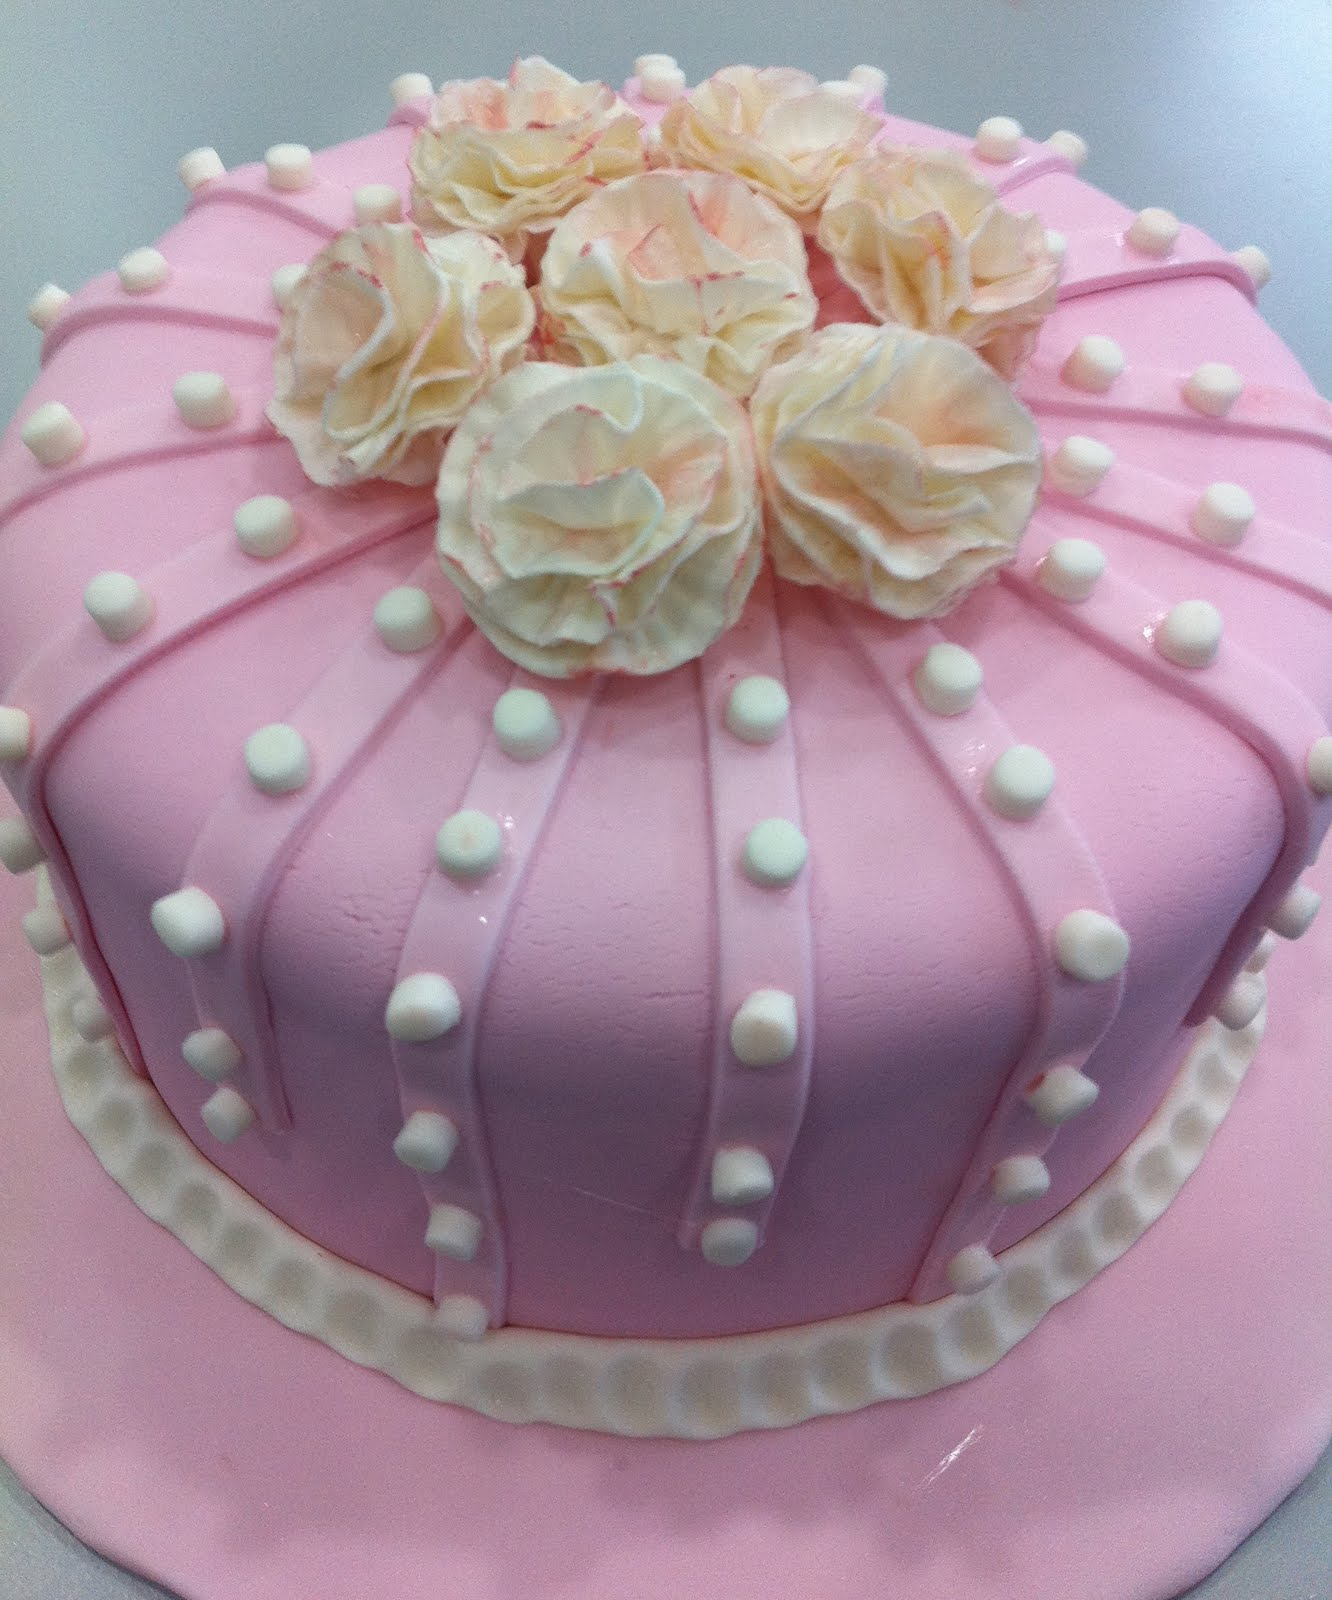 Simply Amazing Cakes: Flower Cakes